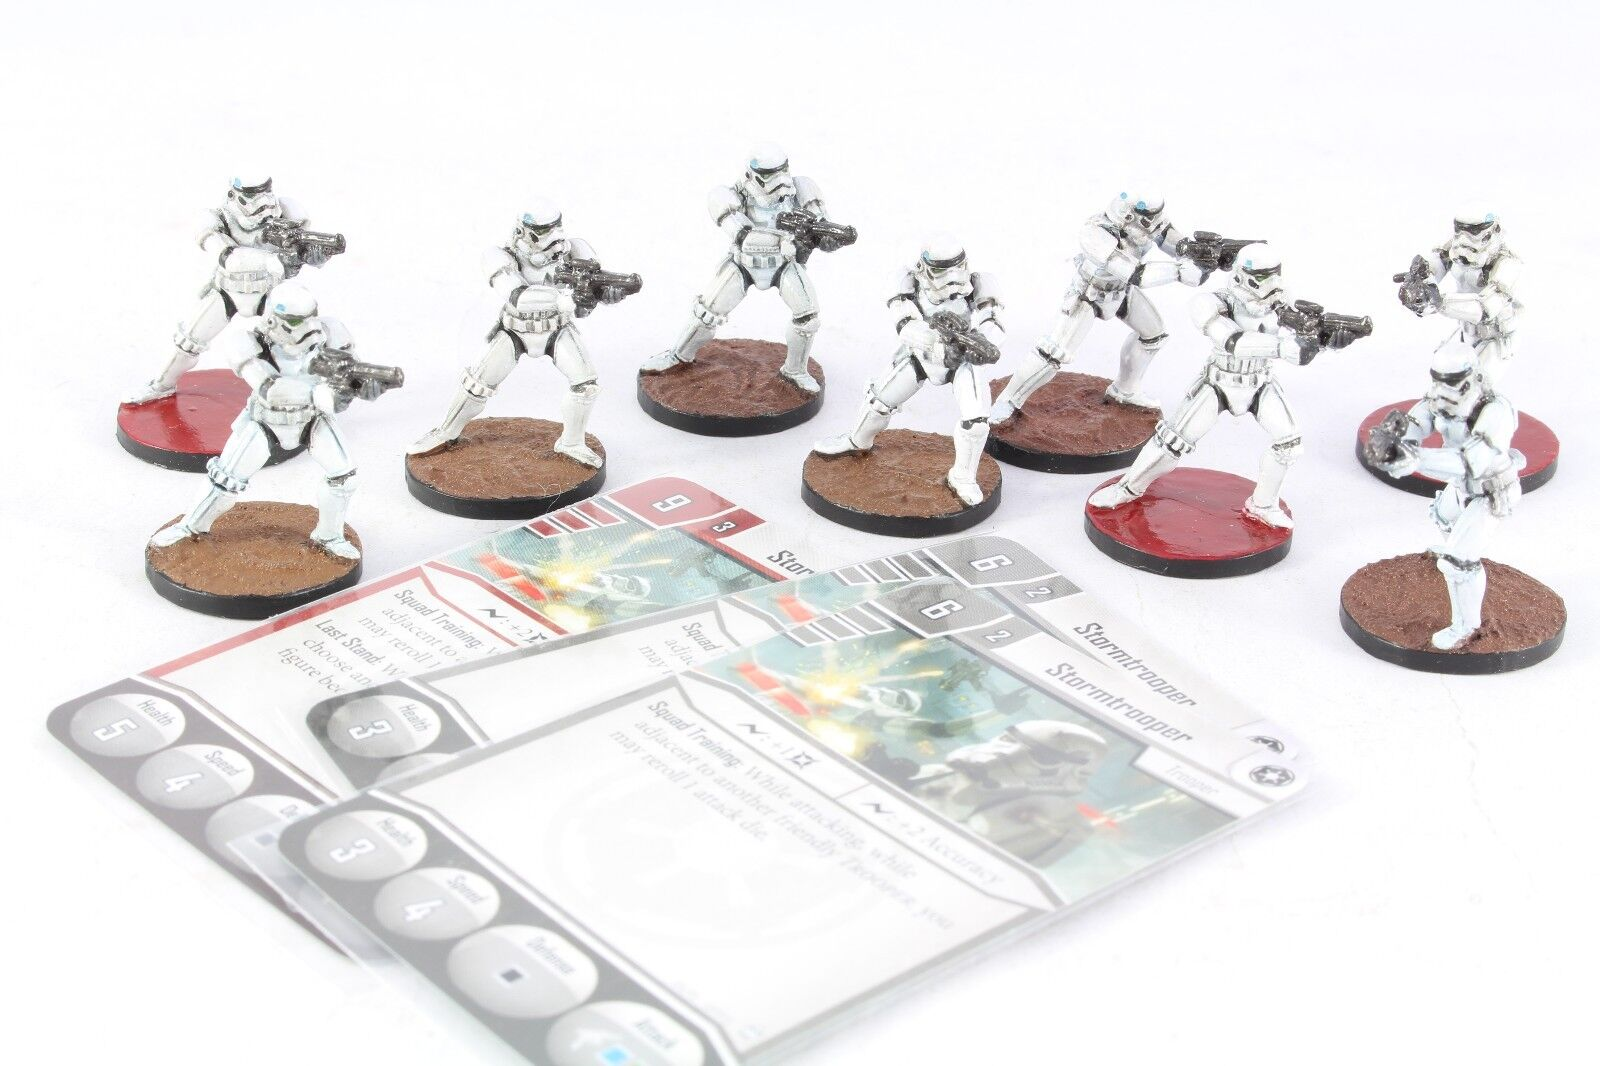 Star Wars Miniatures StormTrooper 8 Imperial Assault Group Core Set Pro Painted